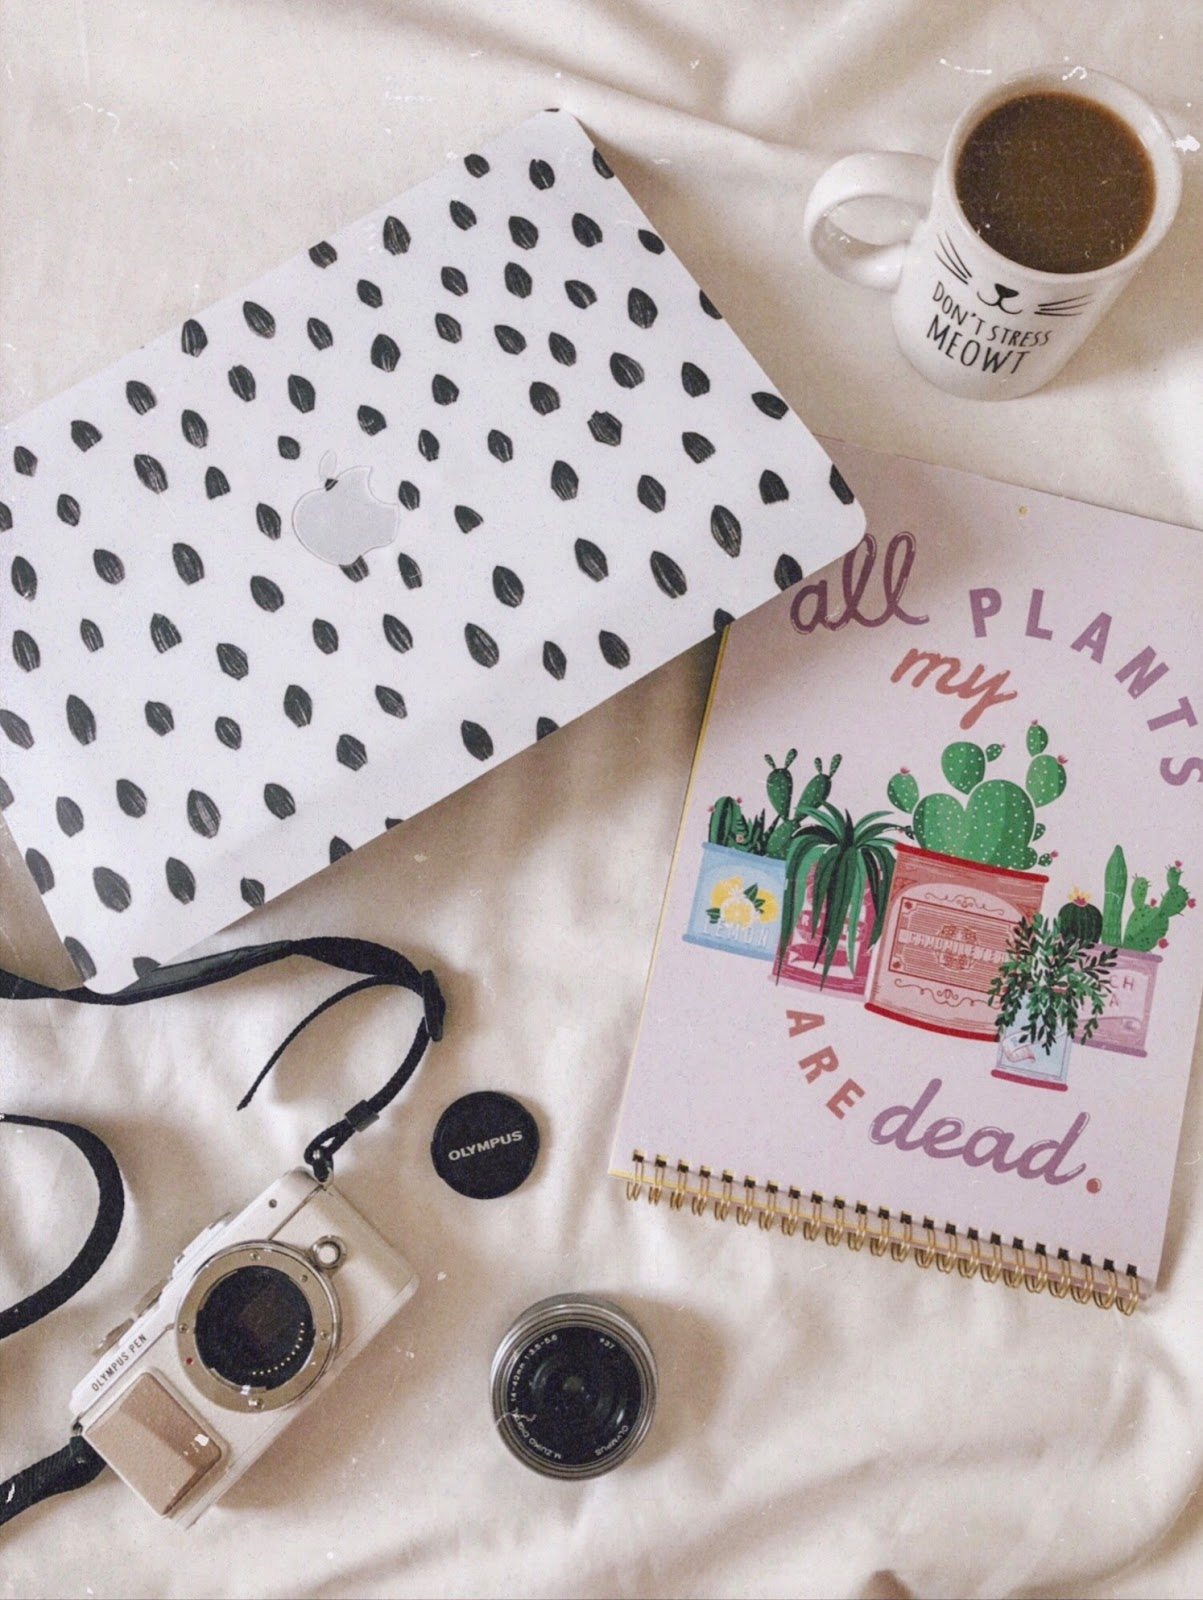 A flatlay against a white bedsheet featuring a MacBook with a brush stroke sticker, a mug of coffee, dismantled camera and calendar reading 'all my planets are dead'